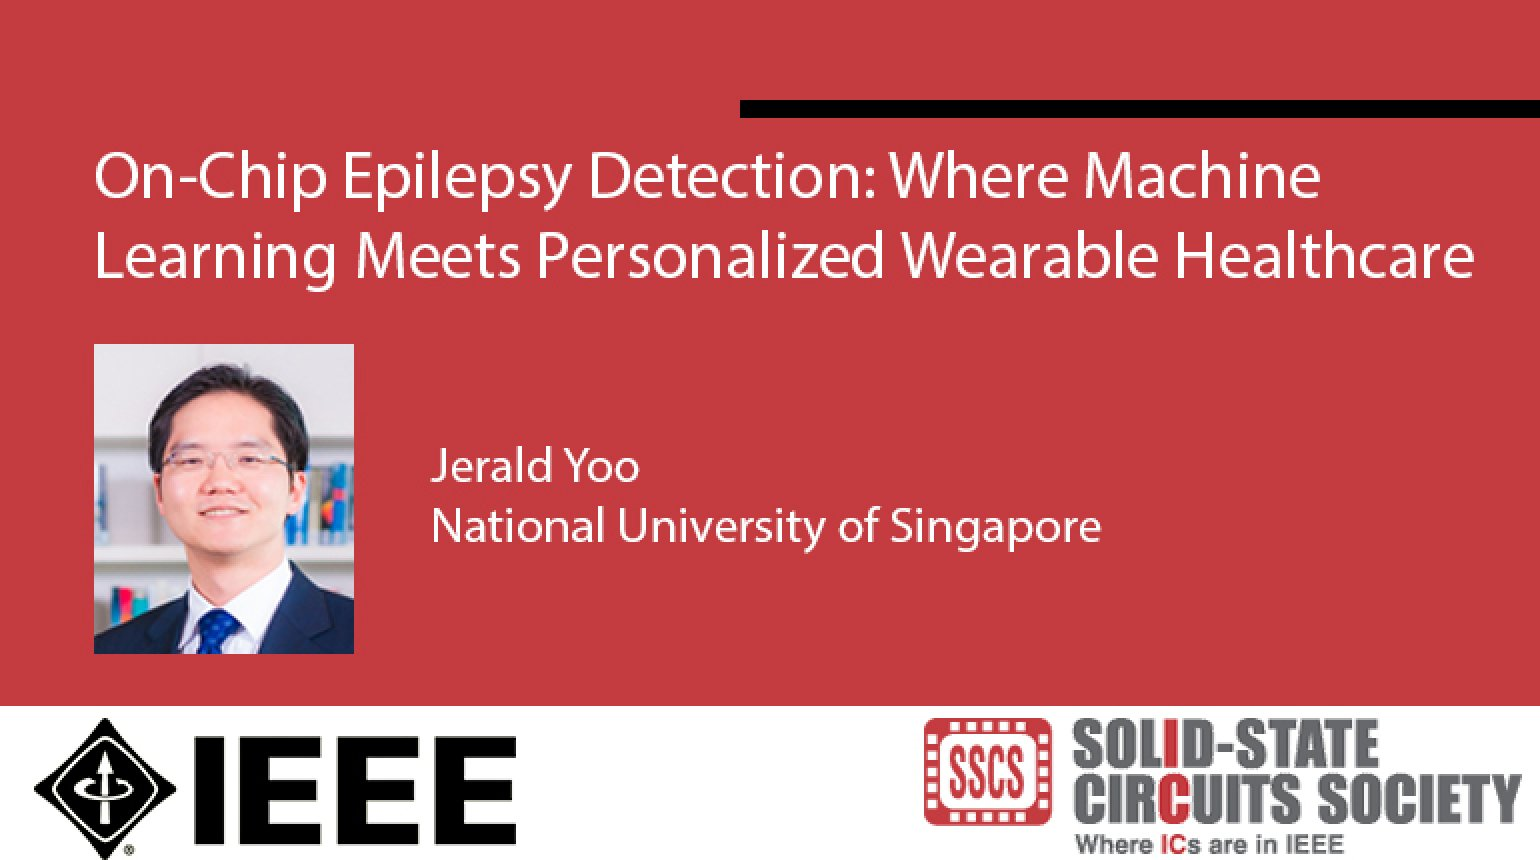 On-Chip Epilepsy Detection: Where Machine Learning Meets Personalized Wearable Healthcare Video